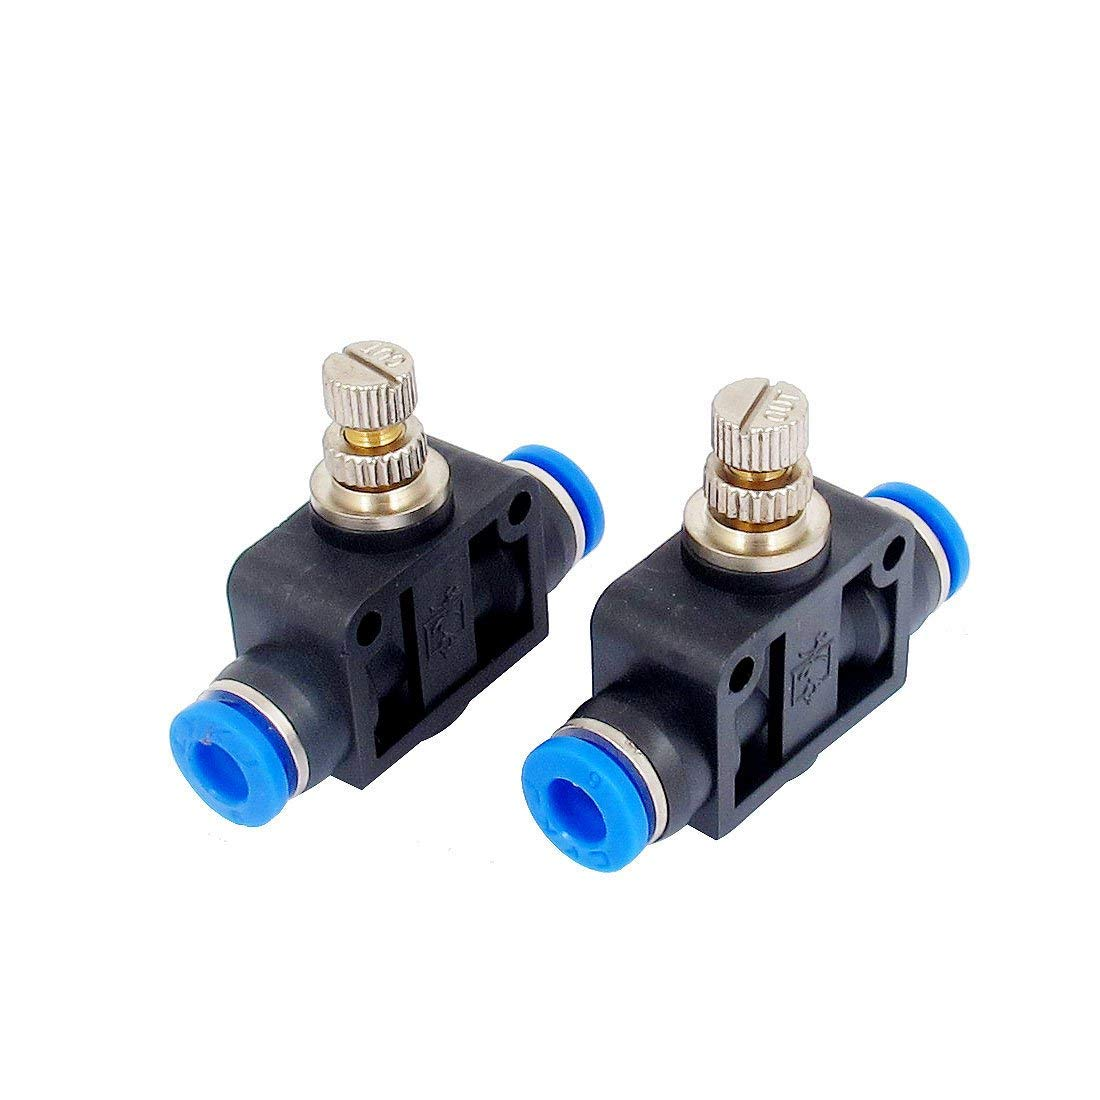 uxcell 6mm OD Tube Flow Speed Control Valve Pneumatic Push in Fittings 2pcs  : Amazon.in: Garden & Outdoors